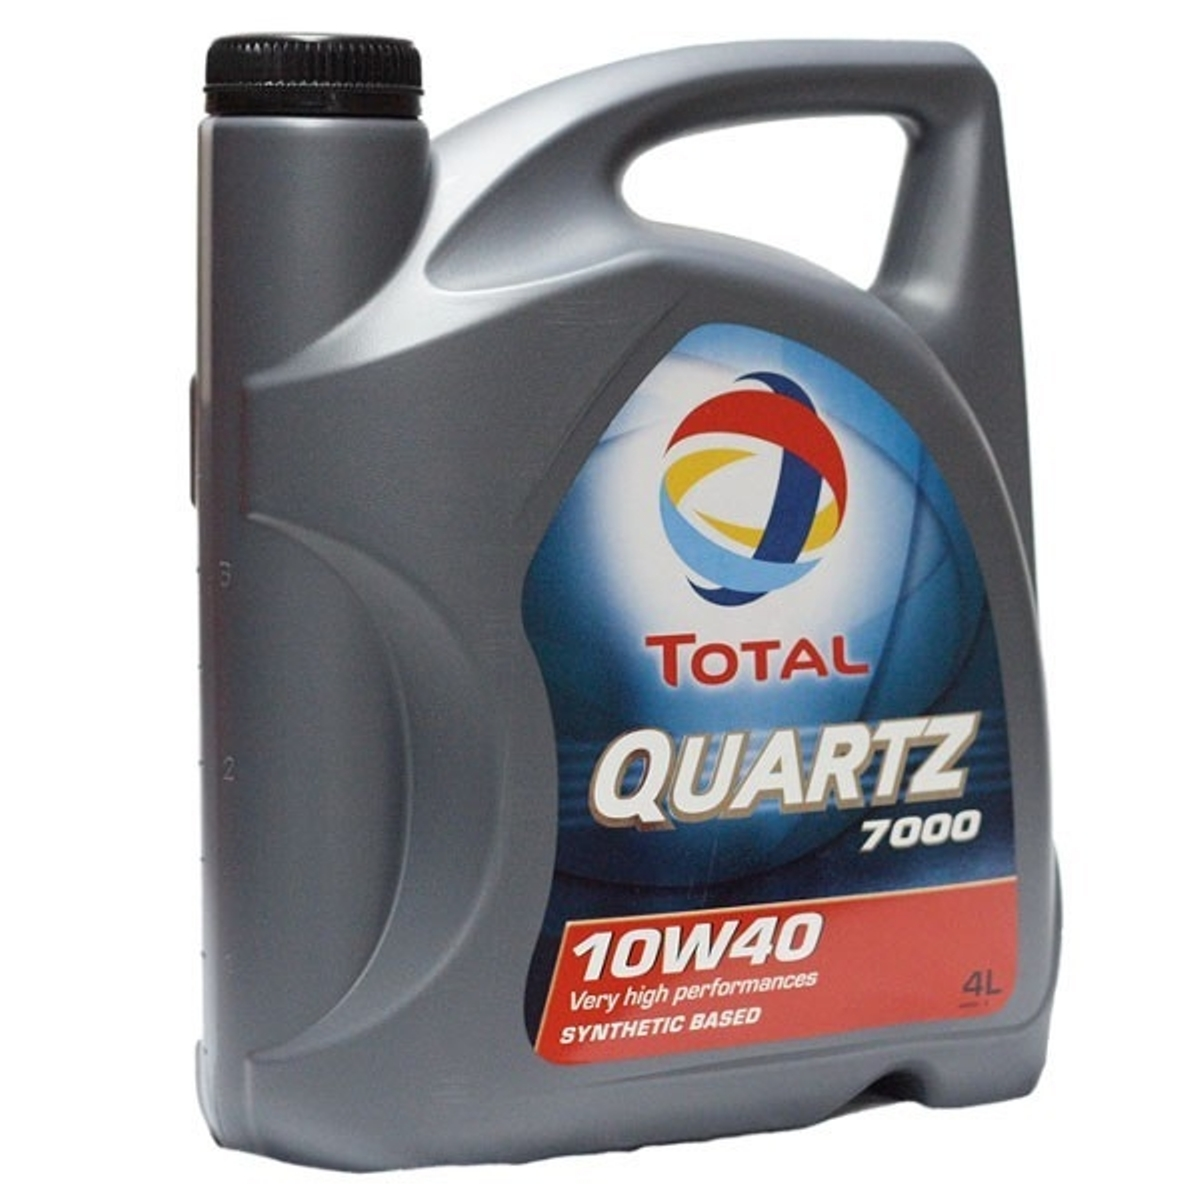 Моторное масло Total Quartz 7000 10W-40, 4 л eset nod32 антивирус platinum edition 3 пк 2 года